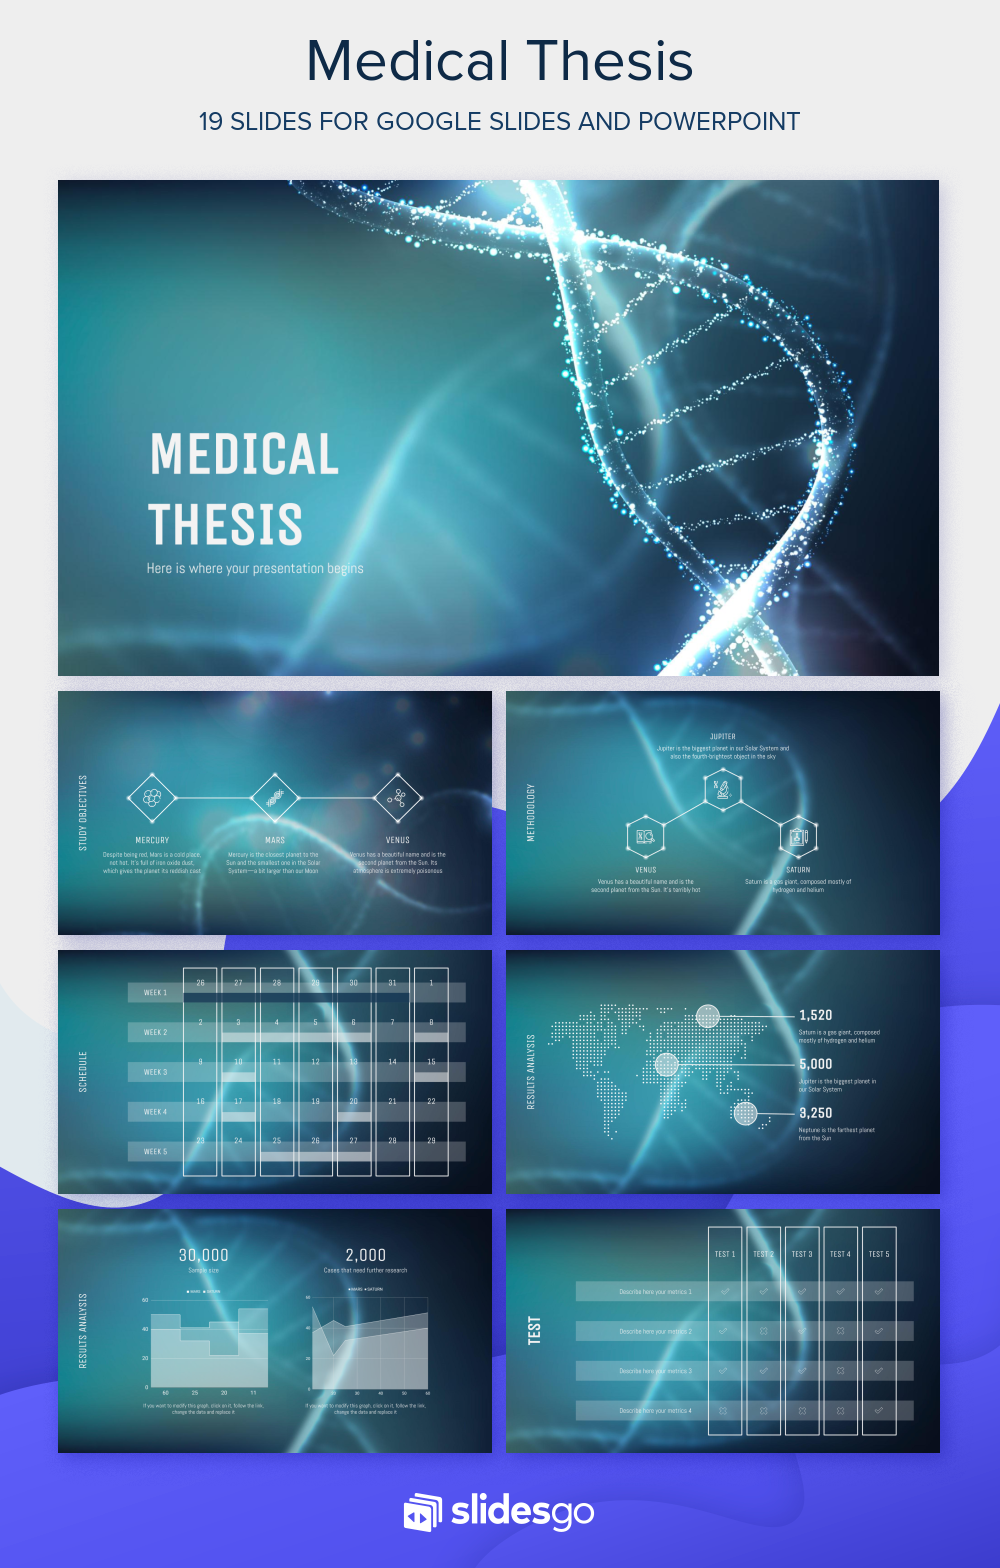 Medical Thesis Presentation Free Google Slides theme and